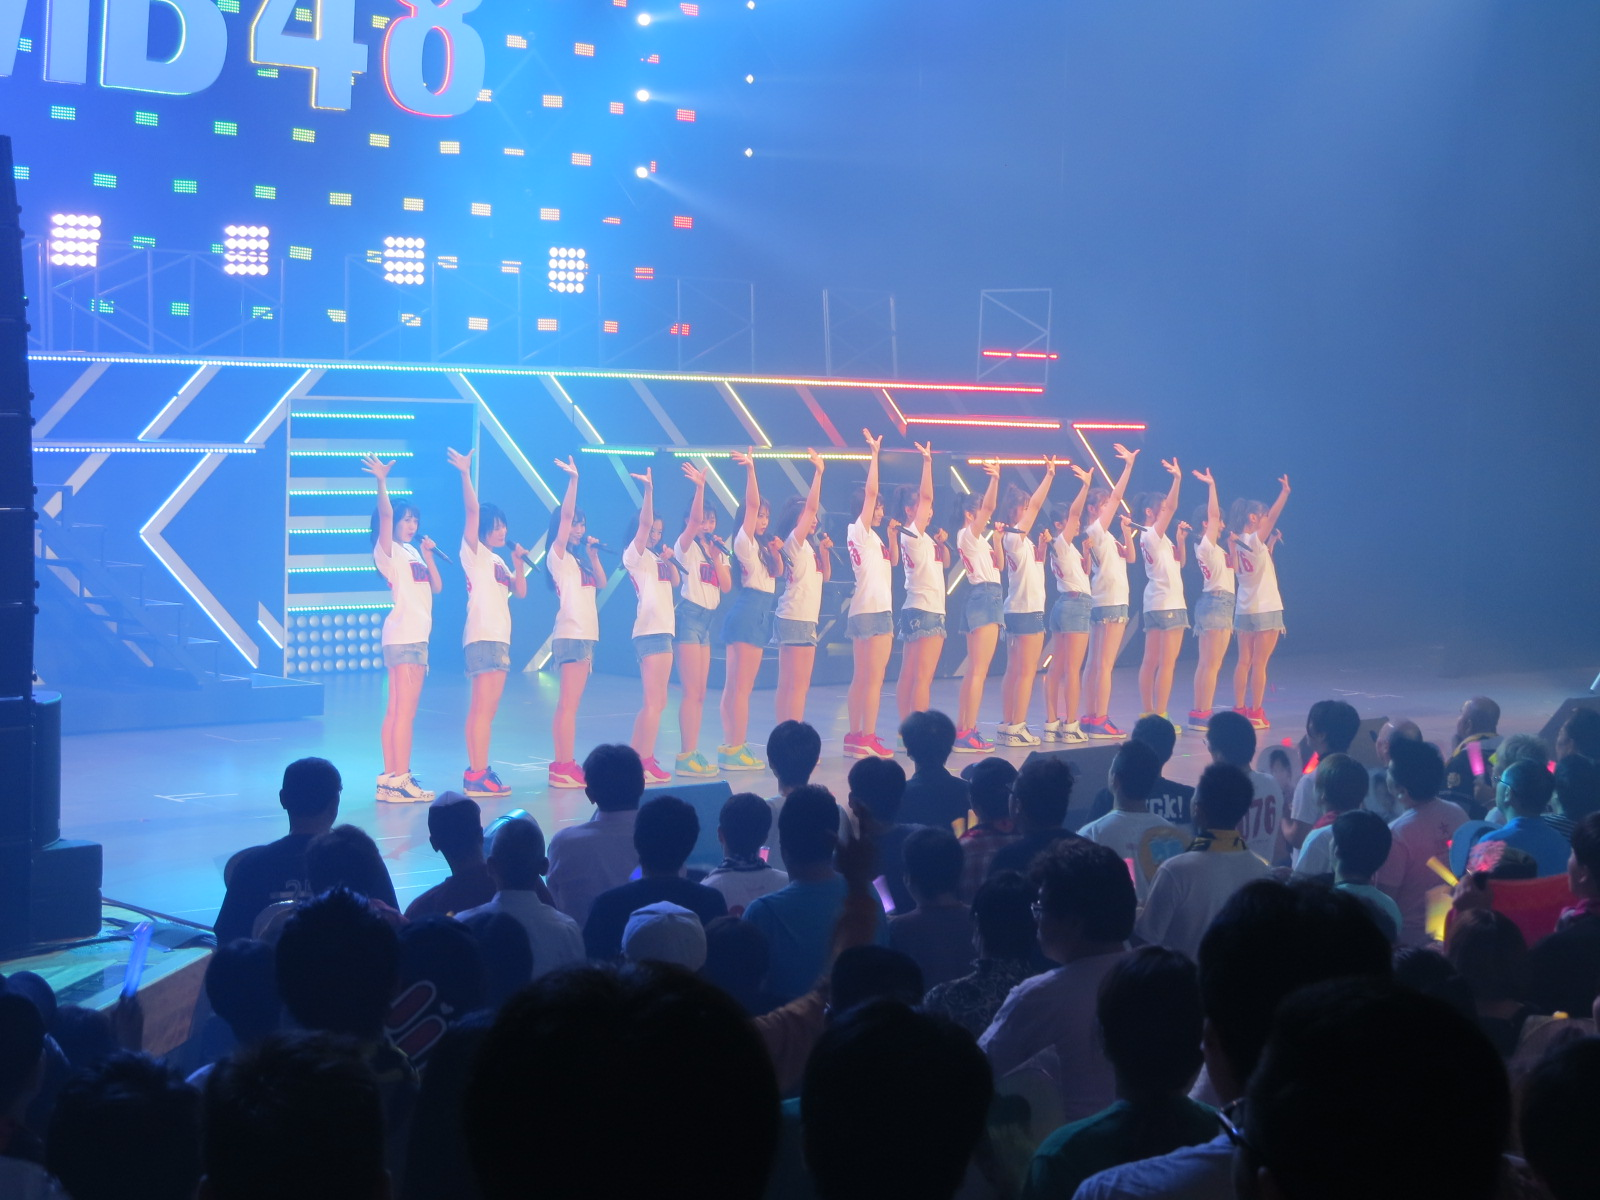 NMB48 LIVE TOUR 2018 in Summer・石川公演の画像-112